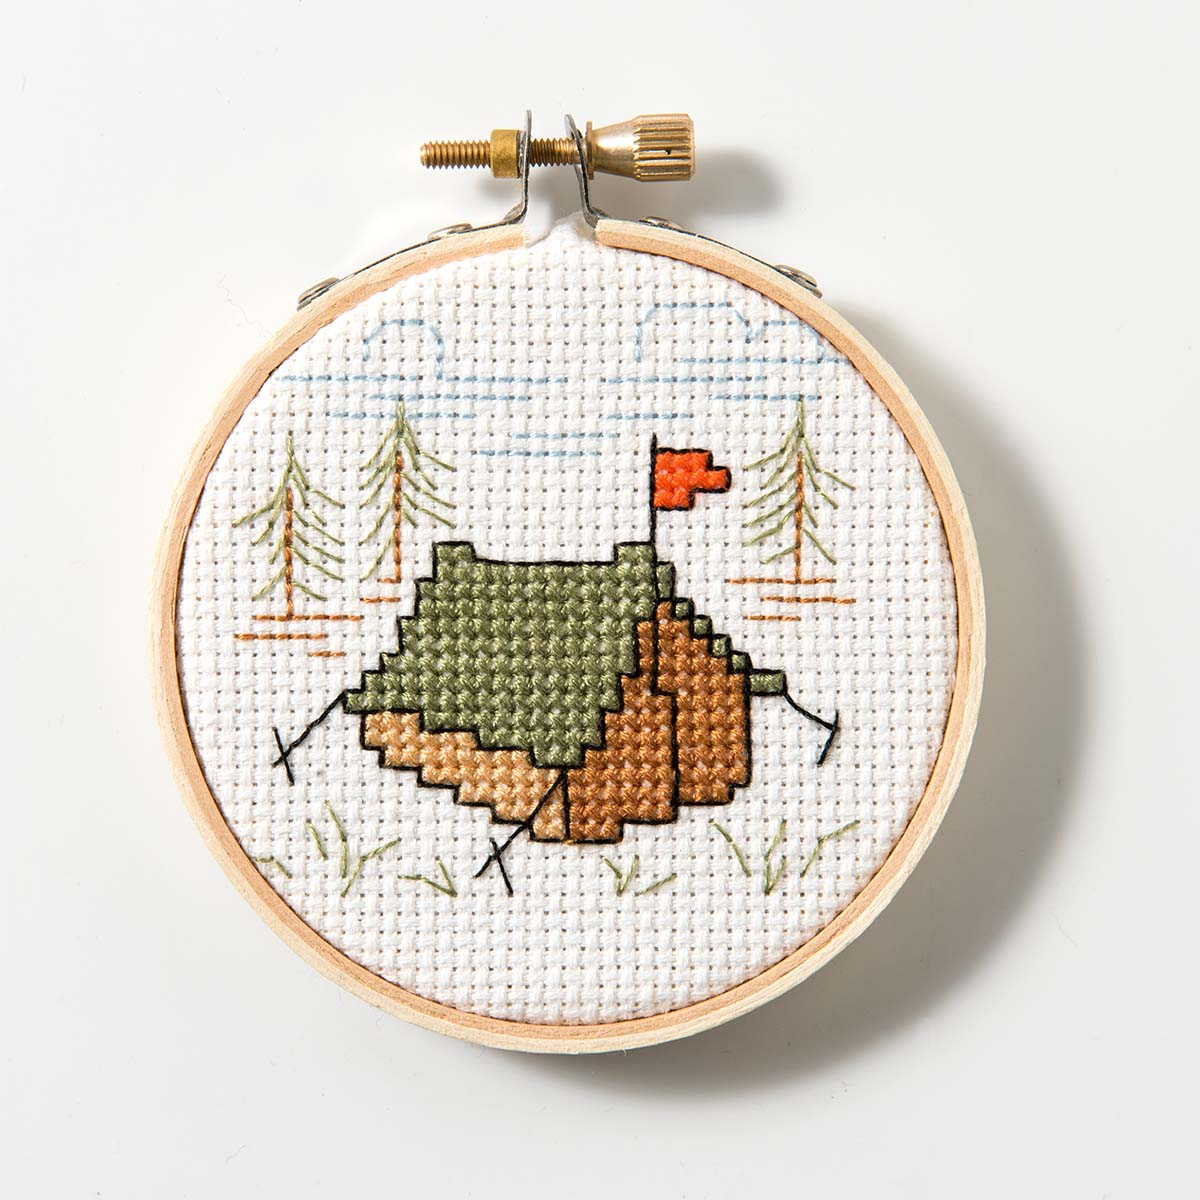 Free Pattern for Cross Stitch - Celebrate National Camping Month